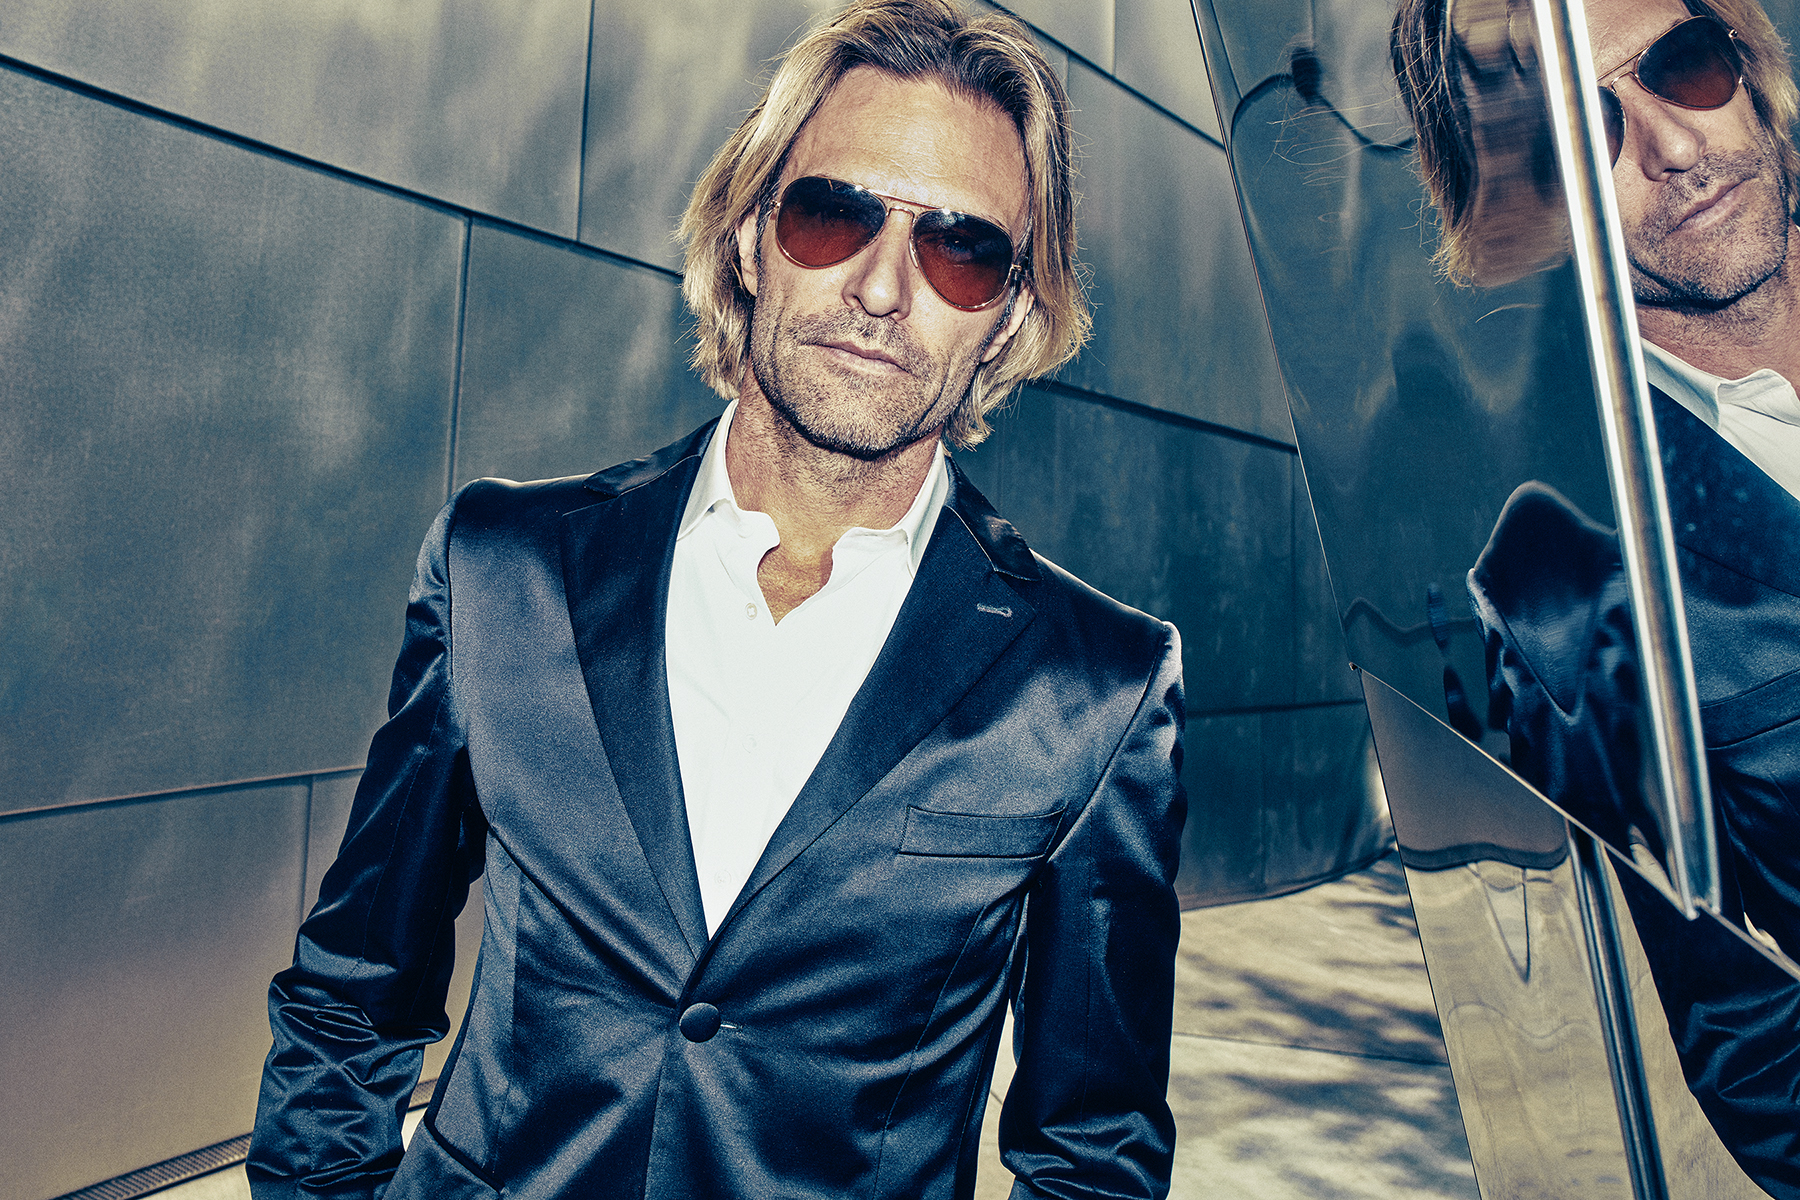 Eric Whitacre at The 2019 NAMM Show